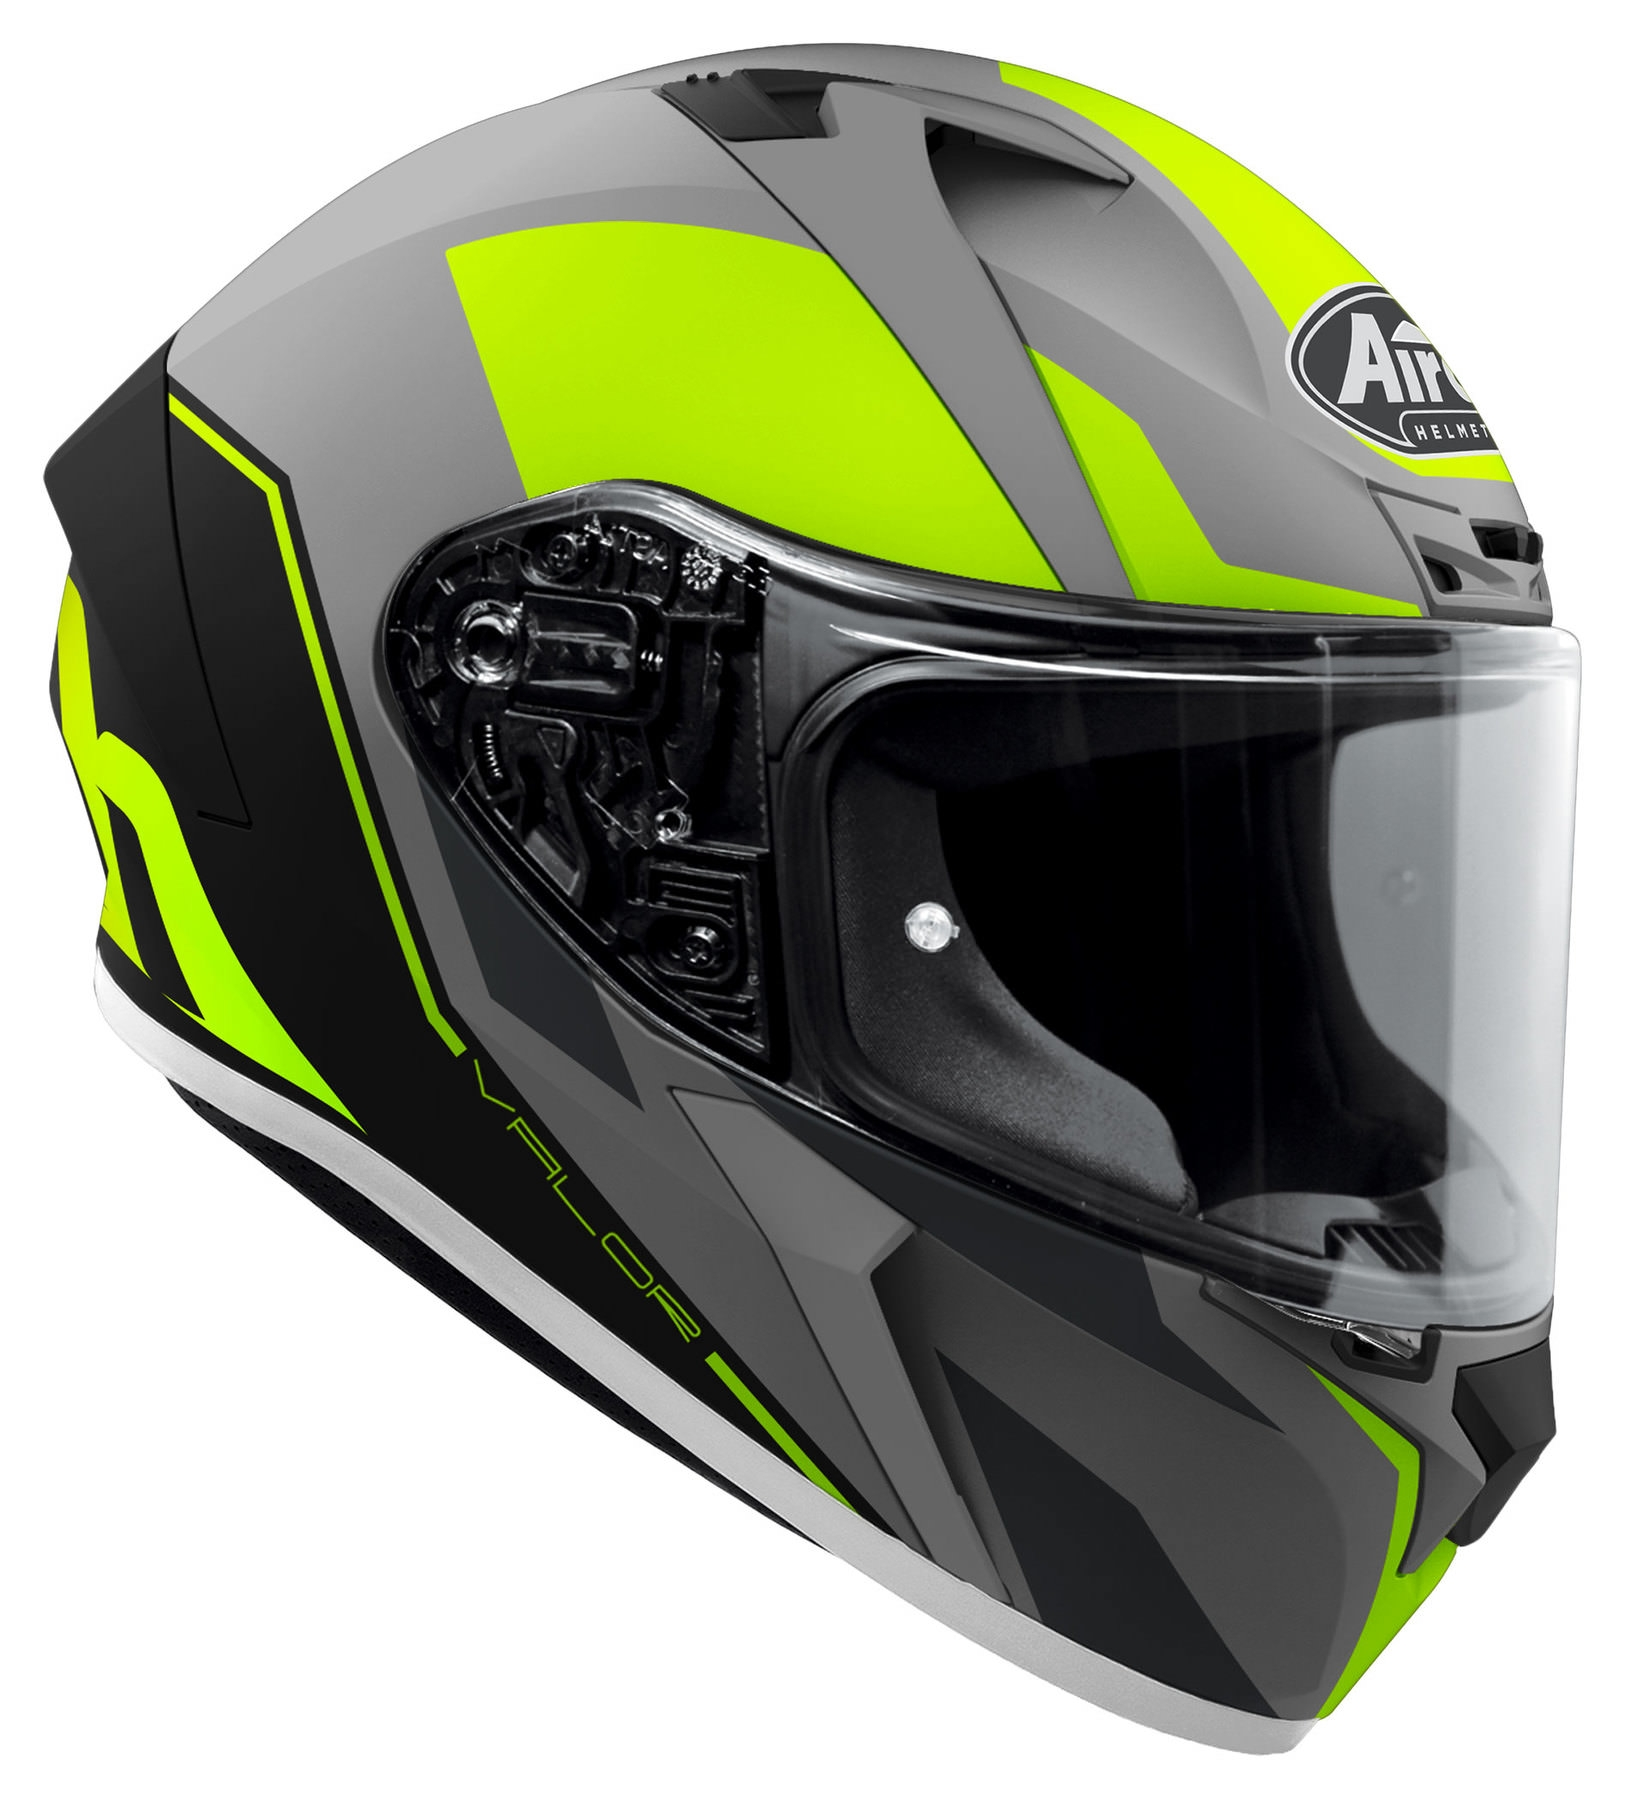 Casco integrale Airoh VALOR WINGS Yellow Matt 2